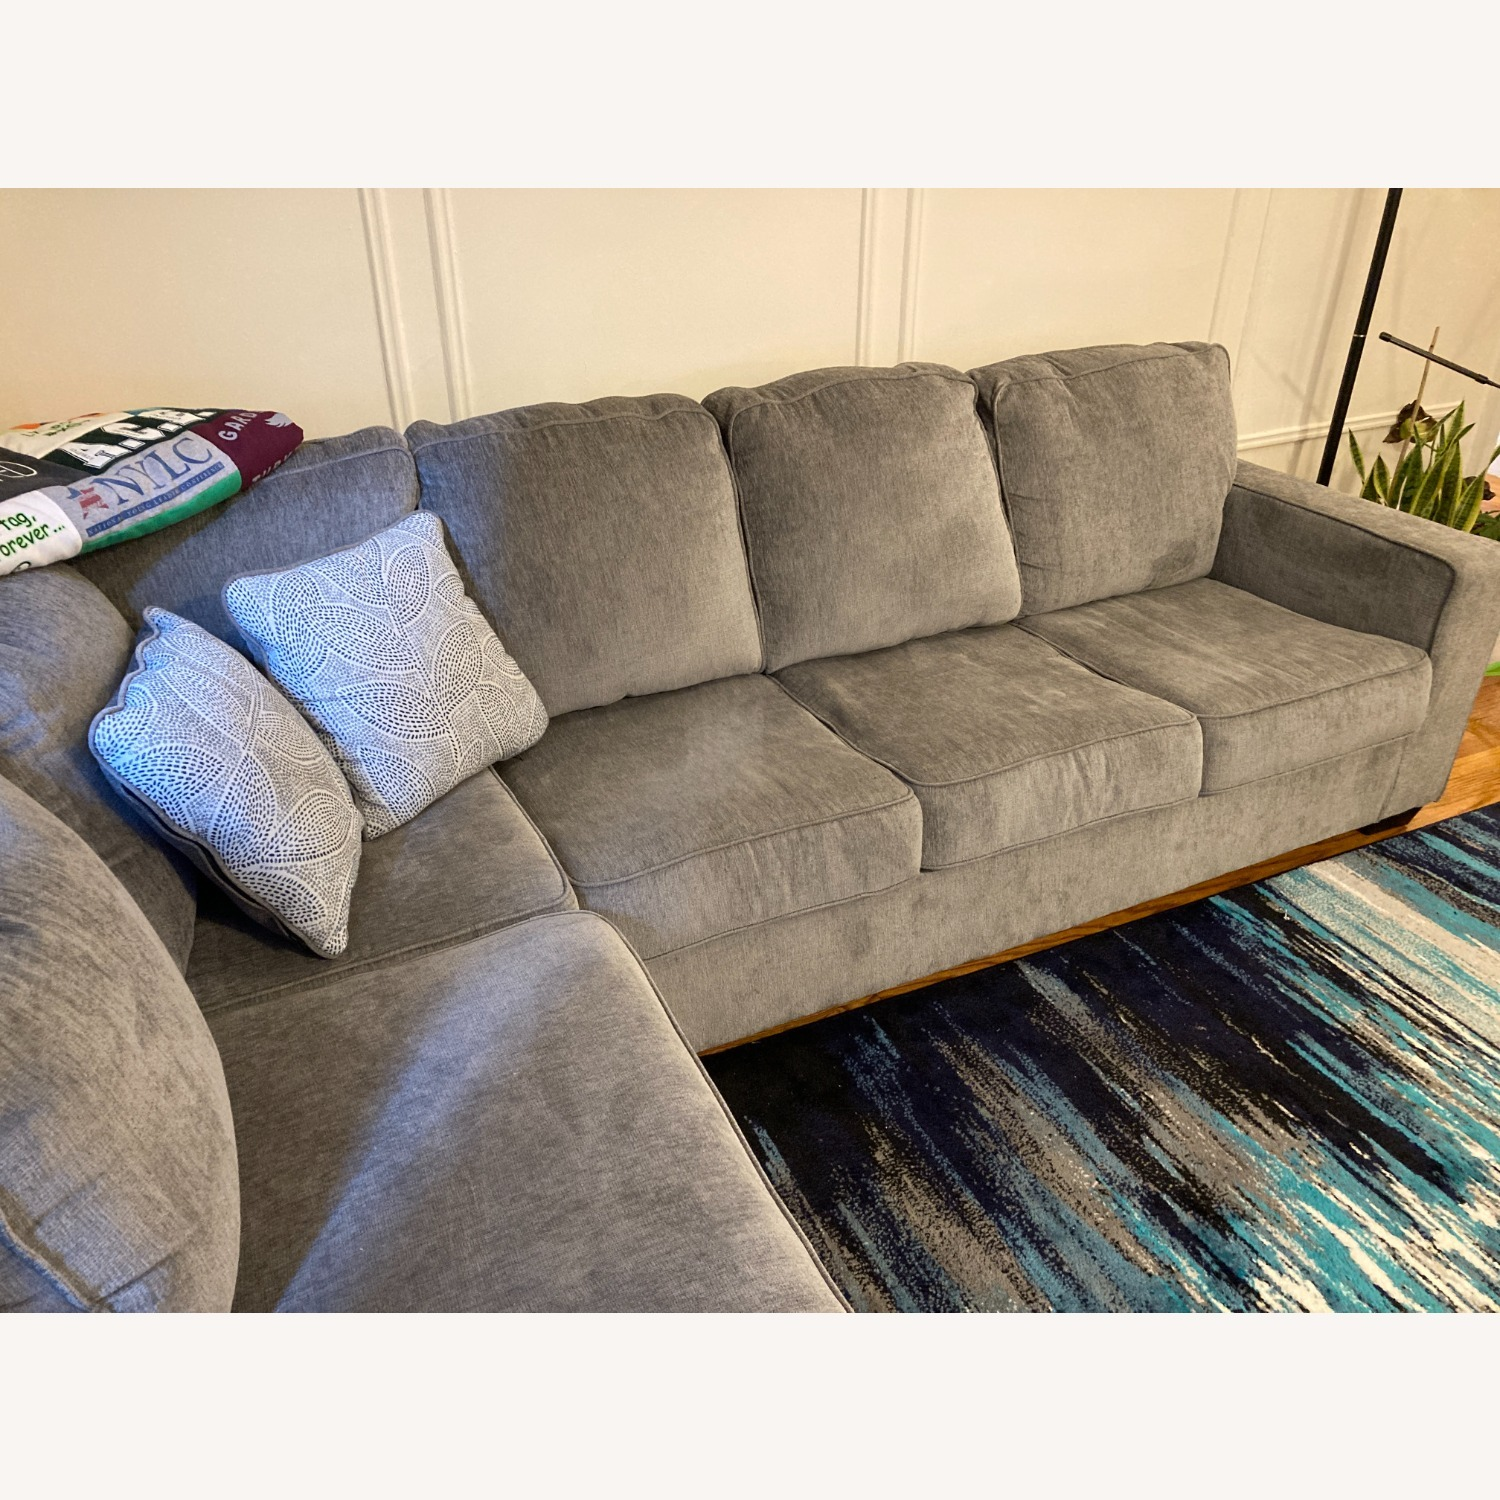 Ashley Furniture Altari 2-Piece Sectional with Chaise - image-2